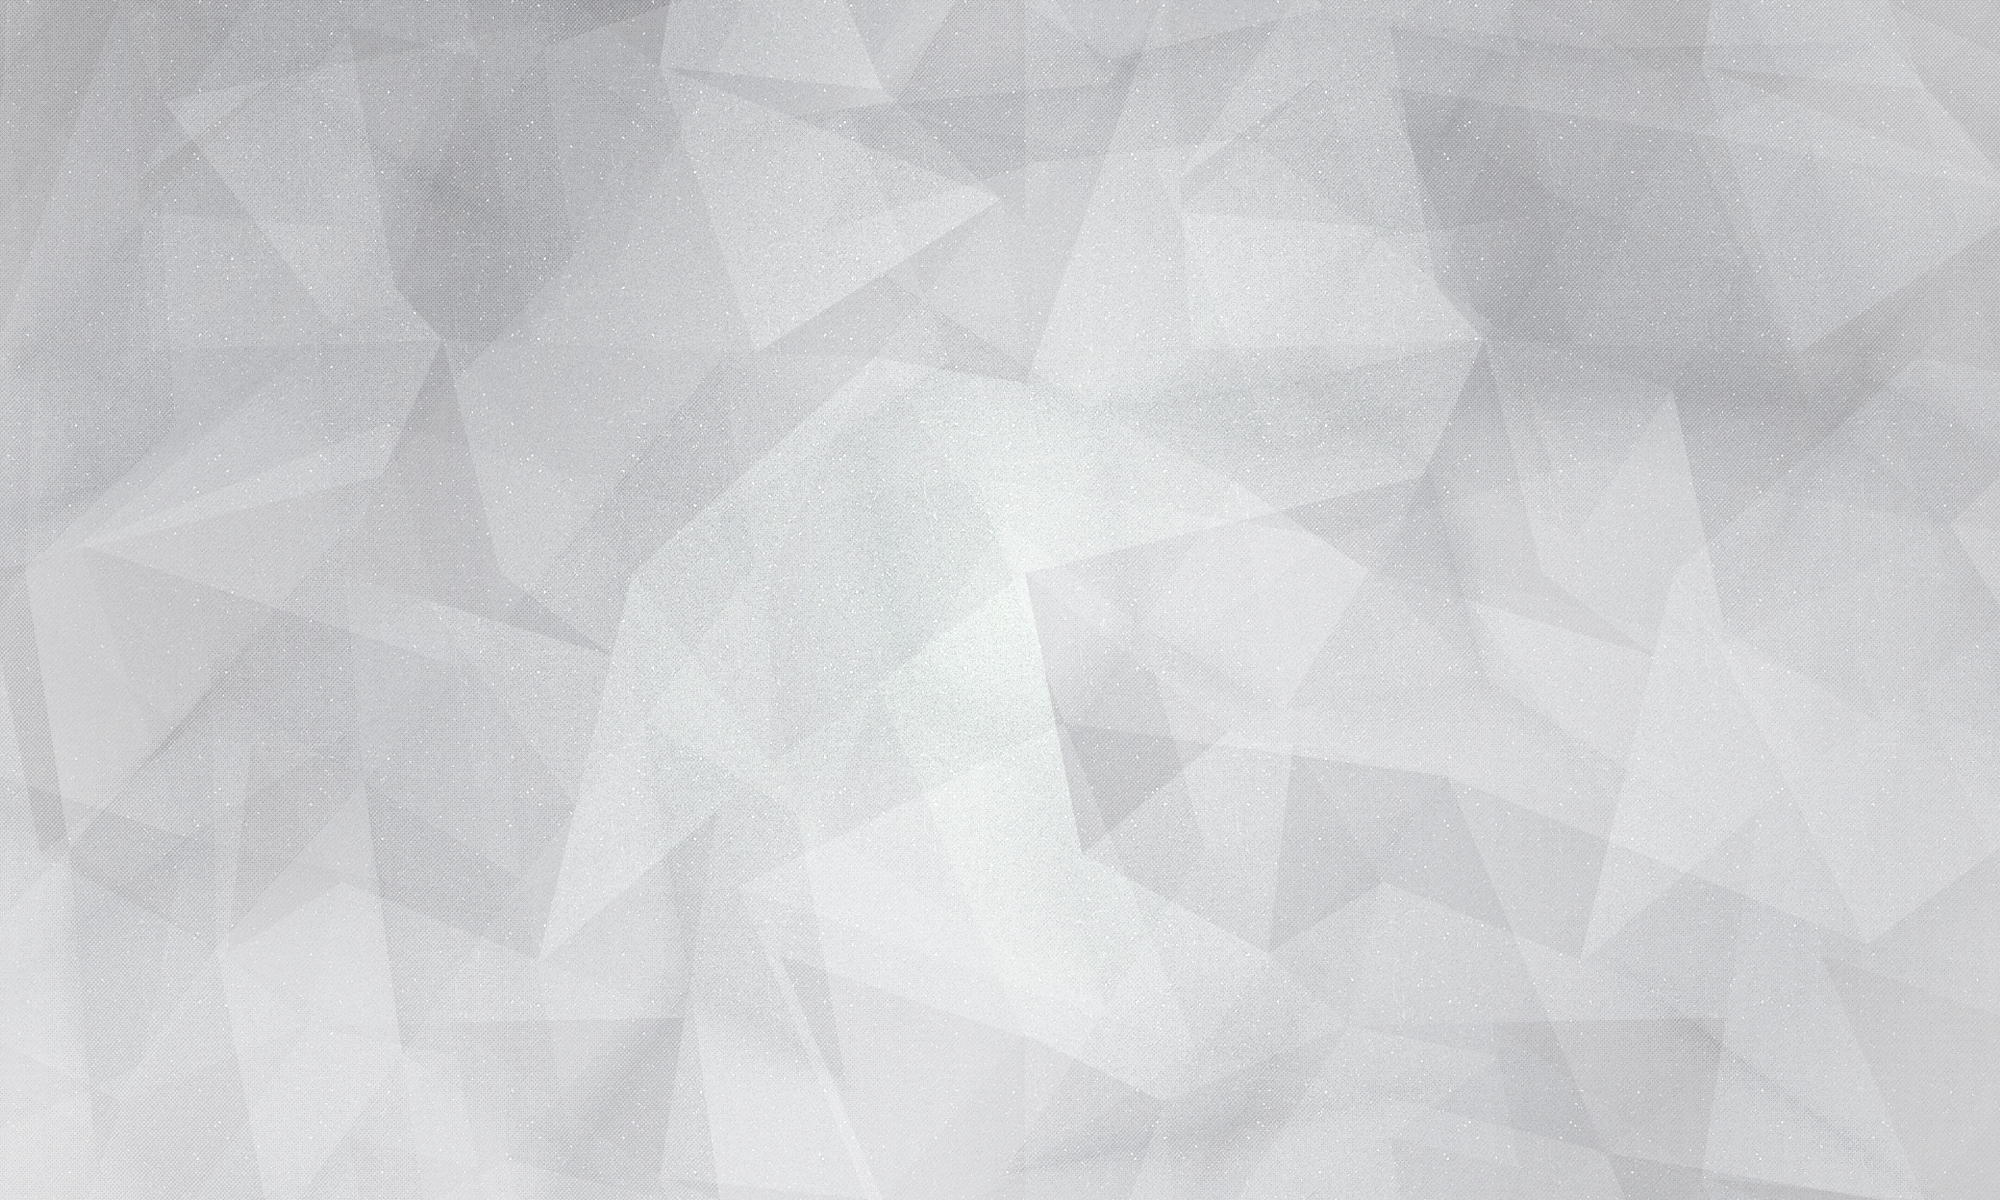 background-images-for-websites-professional-white-12